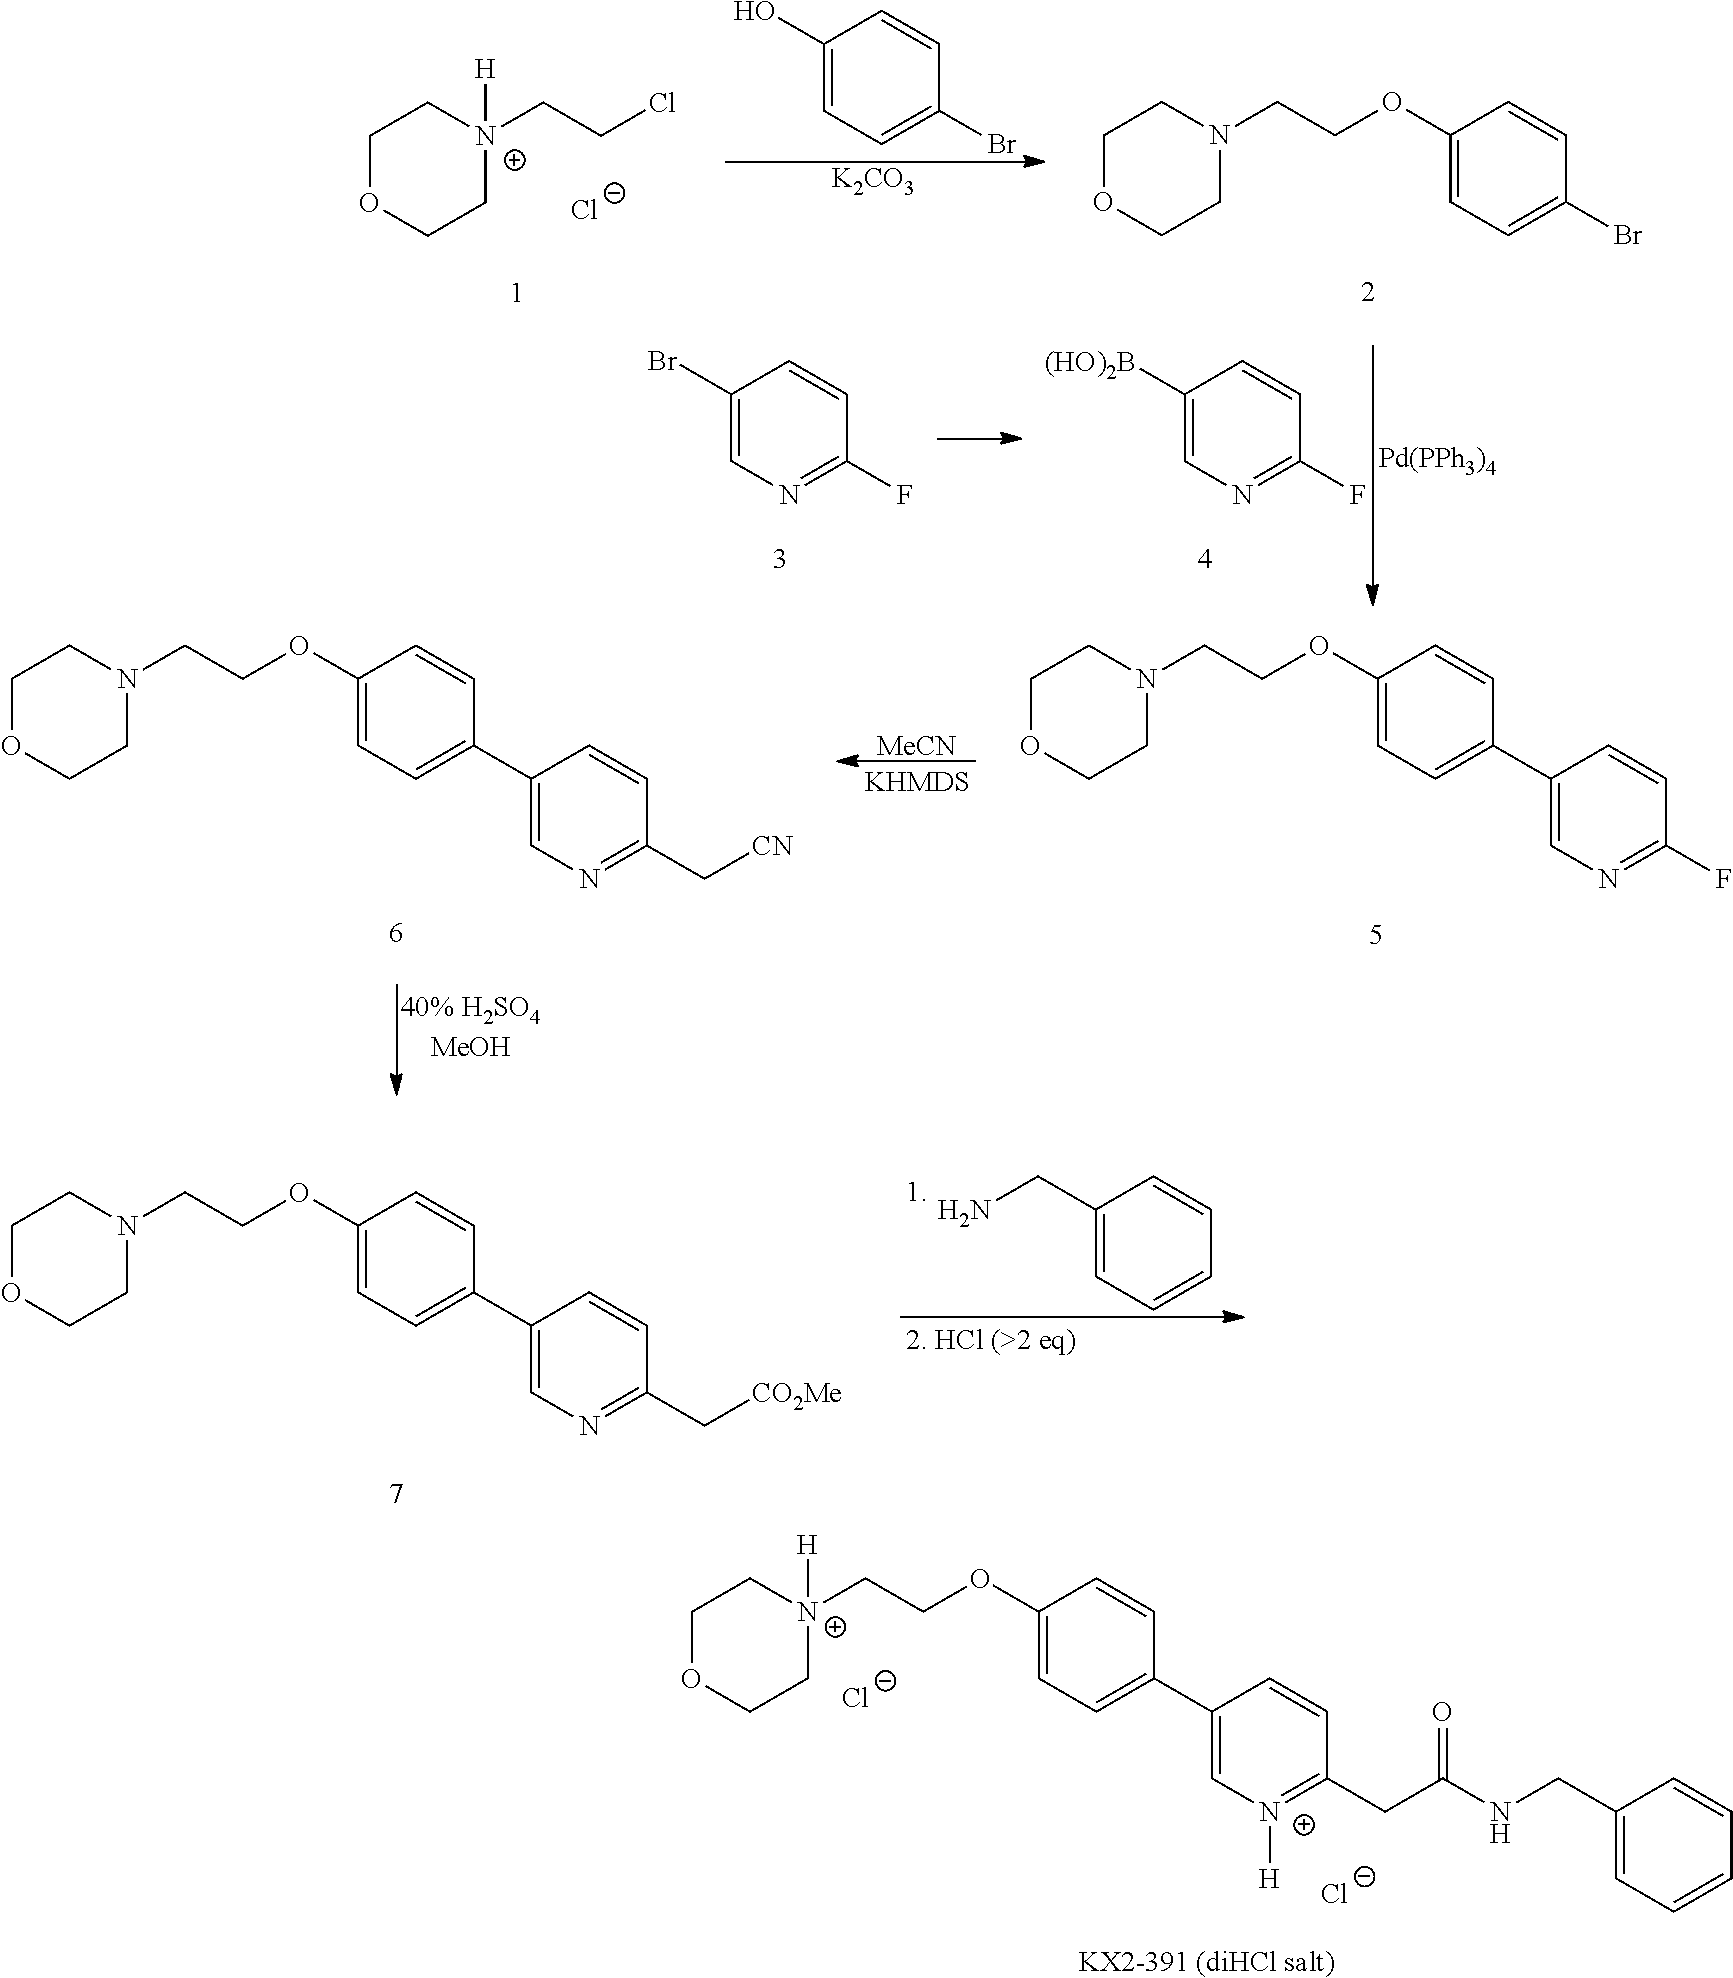 Us20150315147a1 Compositions For Modulating A Kinase Cascade And Cmd Concentrace Trace Mineral 4000 Drops Figure 20151105 C00015